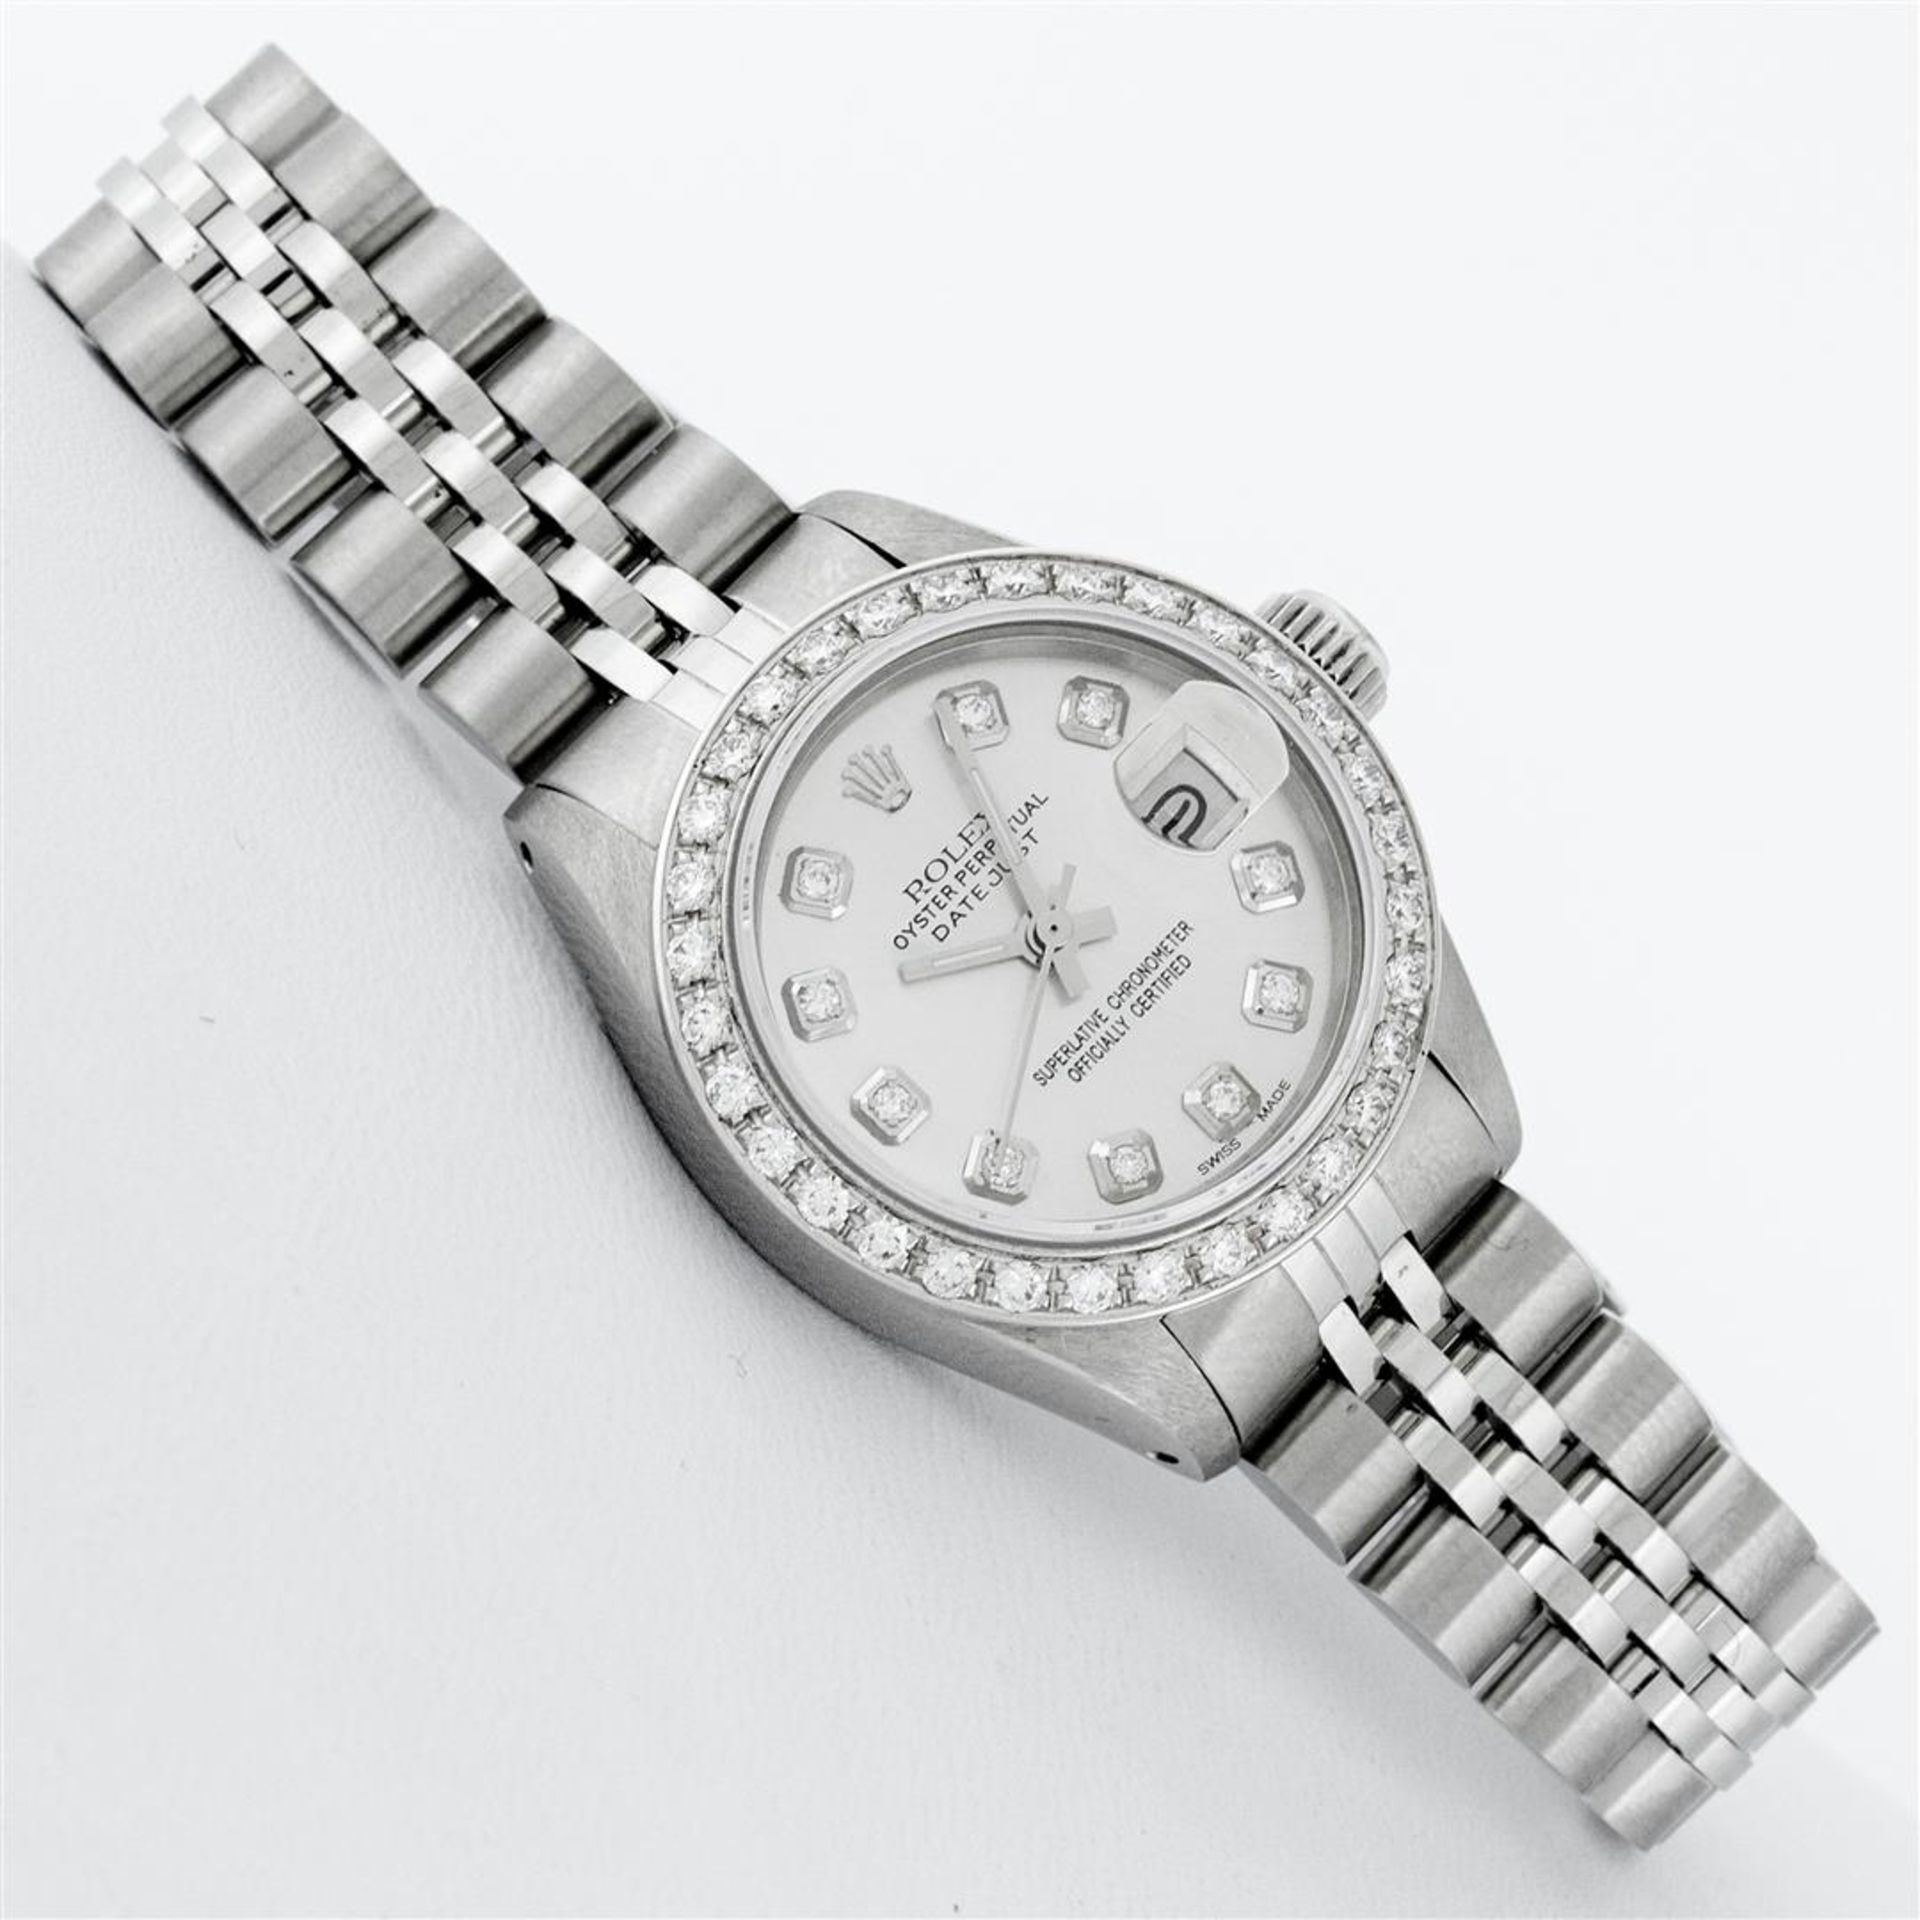 Rolex Ladies Stainless Steel Silver Diamond 26MM Oyster Perpetual Datejust - Image 3 of 9